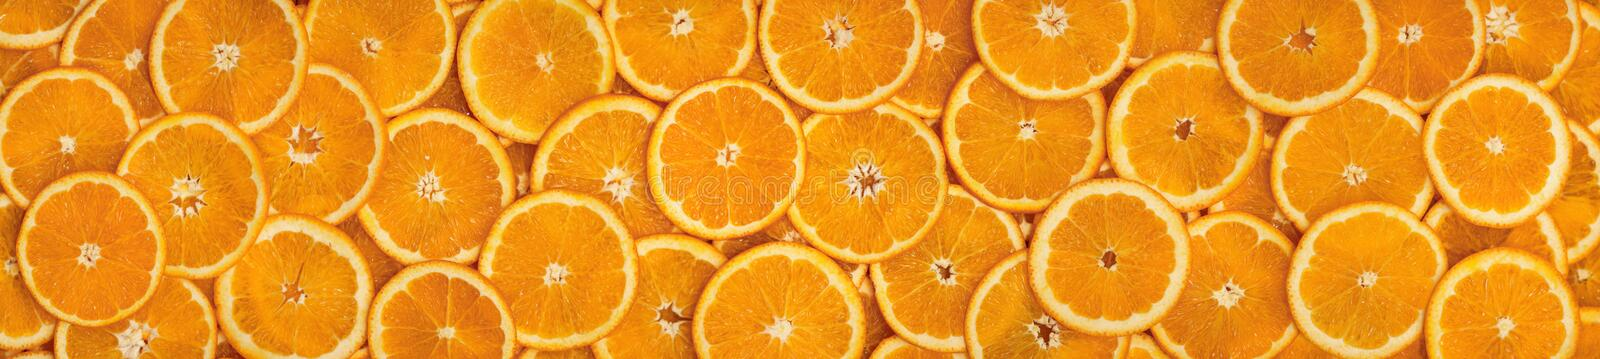 Oranges-panorama. Panorama comprised of multiple photos stock photos